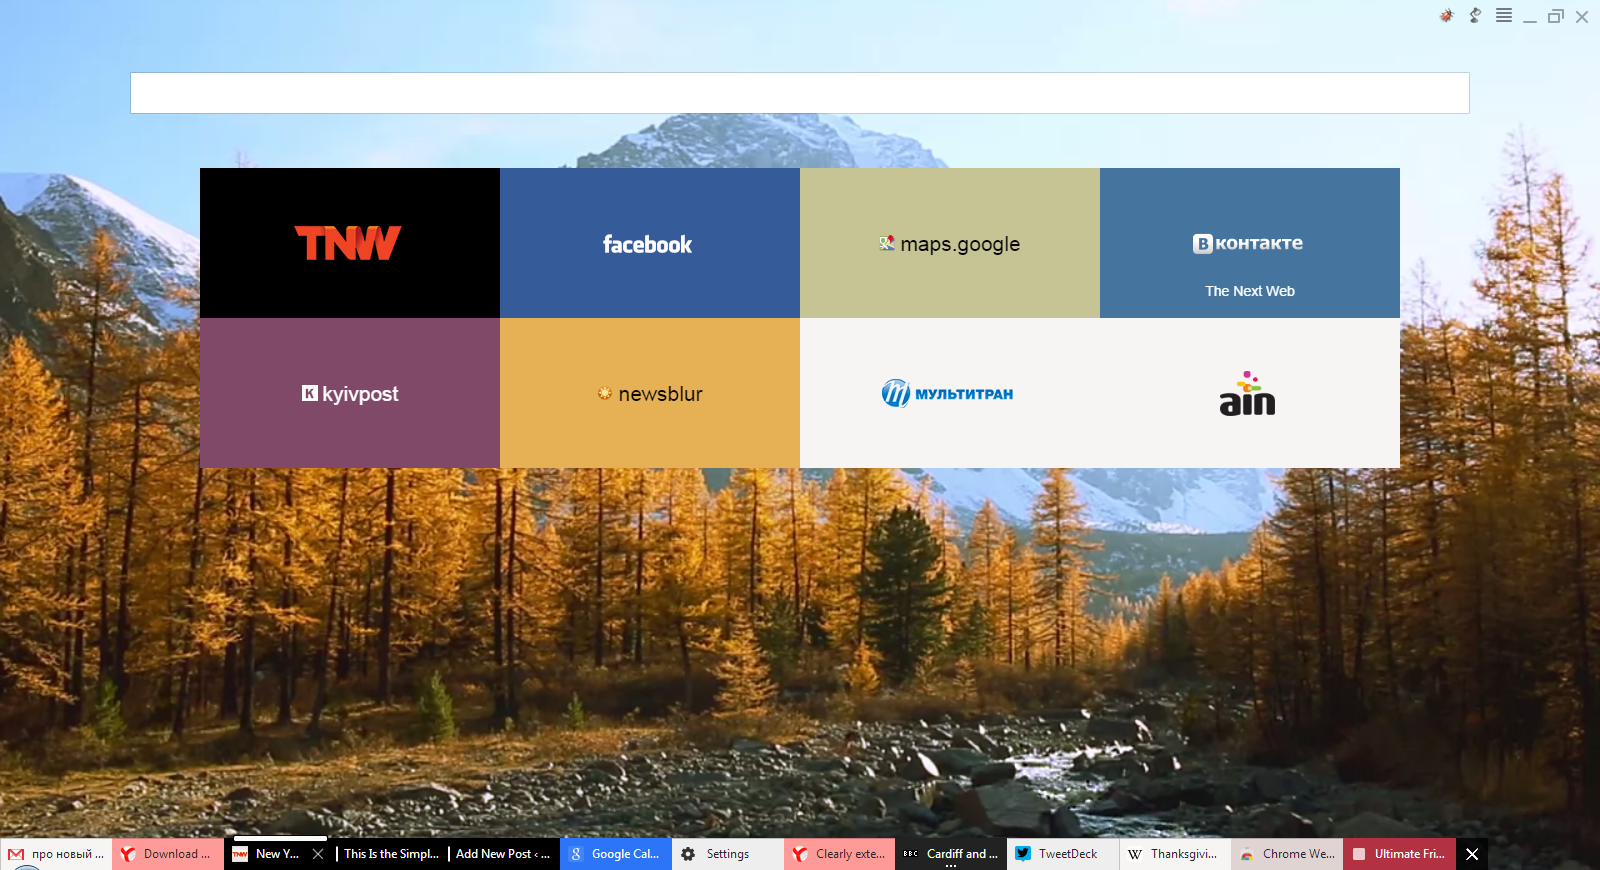 Yandex.Browser is a Bold UI Experiment